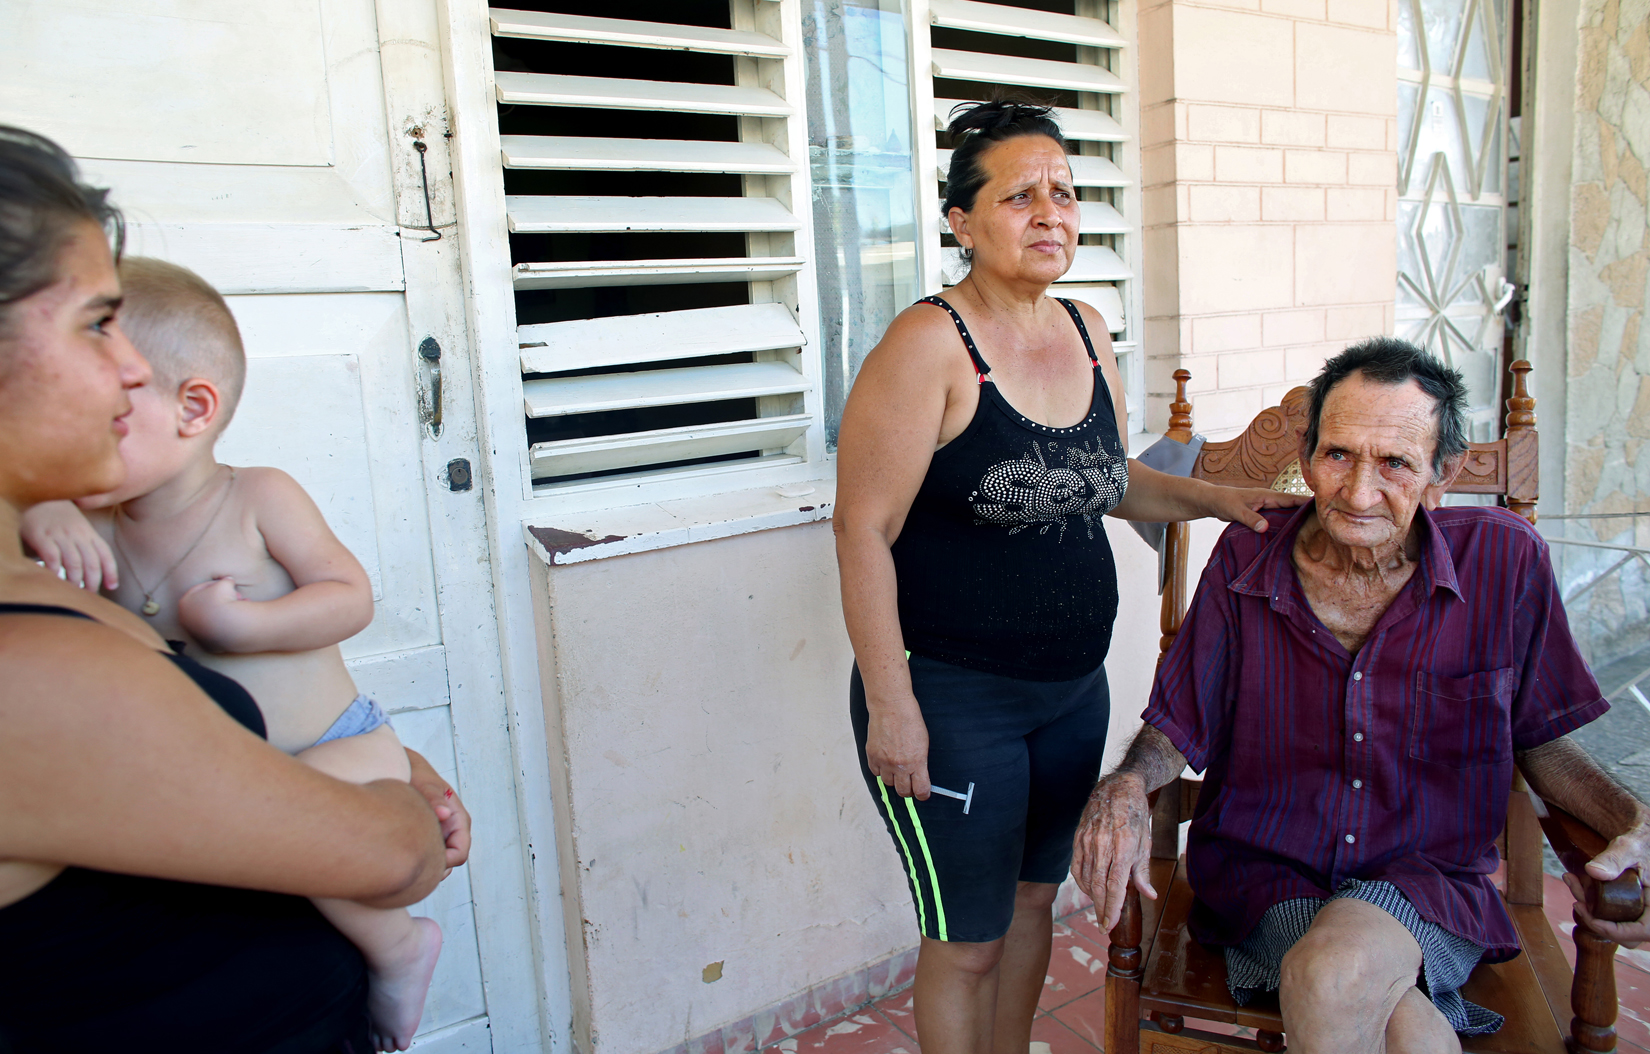 (L-R) Melani Conpagine, 13, holds her brother Mauro Peña, 1, next to the wife of a relative, Nancy Mena, 48, as she gives her father, Juaneto Mena, 82, a shave in the port city of Mariel, Cuba, a town whose tranquil appearance belies its important place in both the history and future of Cuban-American interaction. It is where Russians unloaded nuclear warheads in the 1962 Cuban missile crisis, and the gateway through which 125,000 Miami-bound emigres fled during the Mariel Boatlift of 1980. The town is now the site of construction of a deepwater container port and a free-trade zone, a critical ingredient for which will be the future of the U.S. embargo against Cuba, in place for more than 50 years but now under speculation of being lifted.